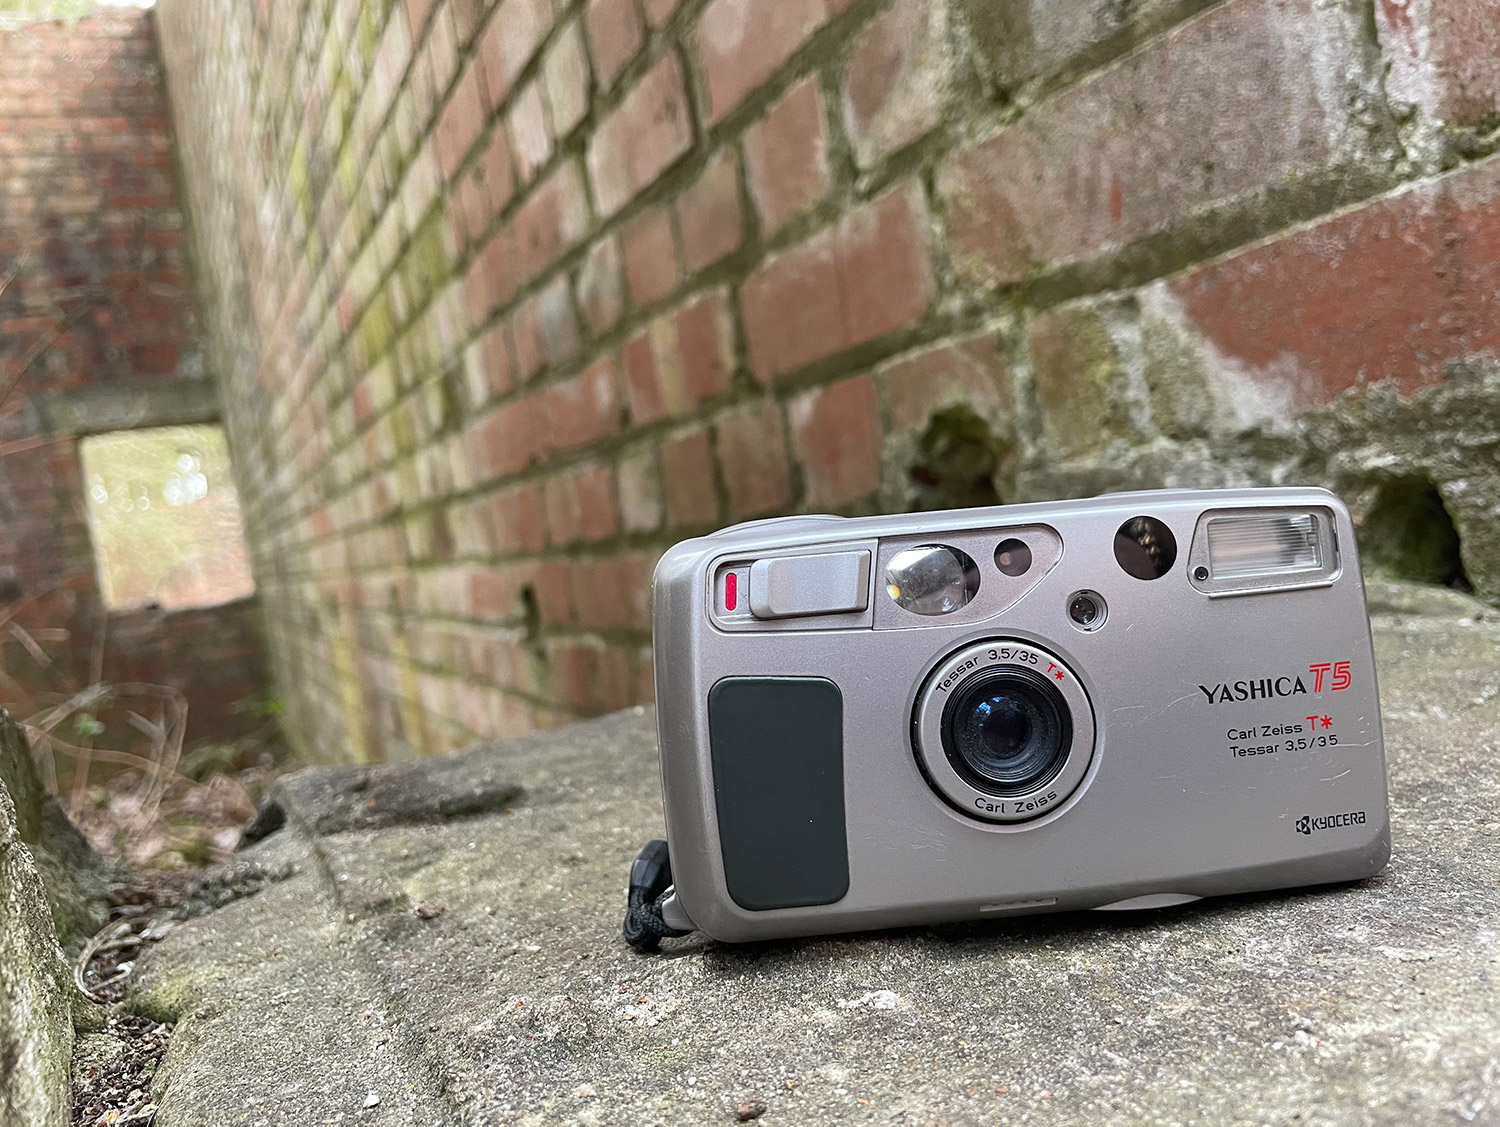 A 35mm film camera: the Yashica T5. A film photography classic.